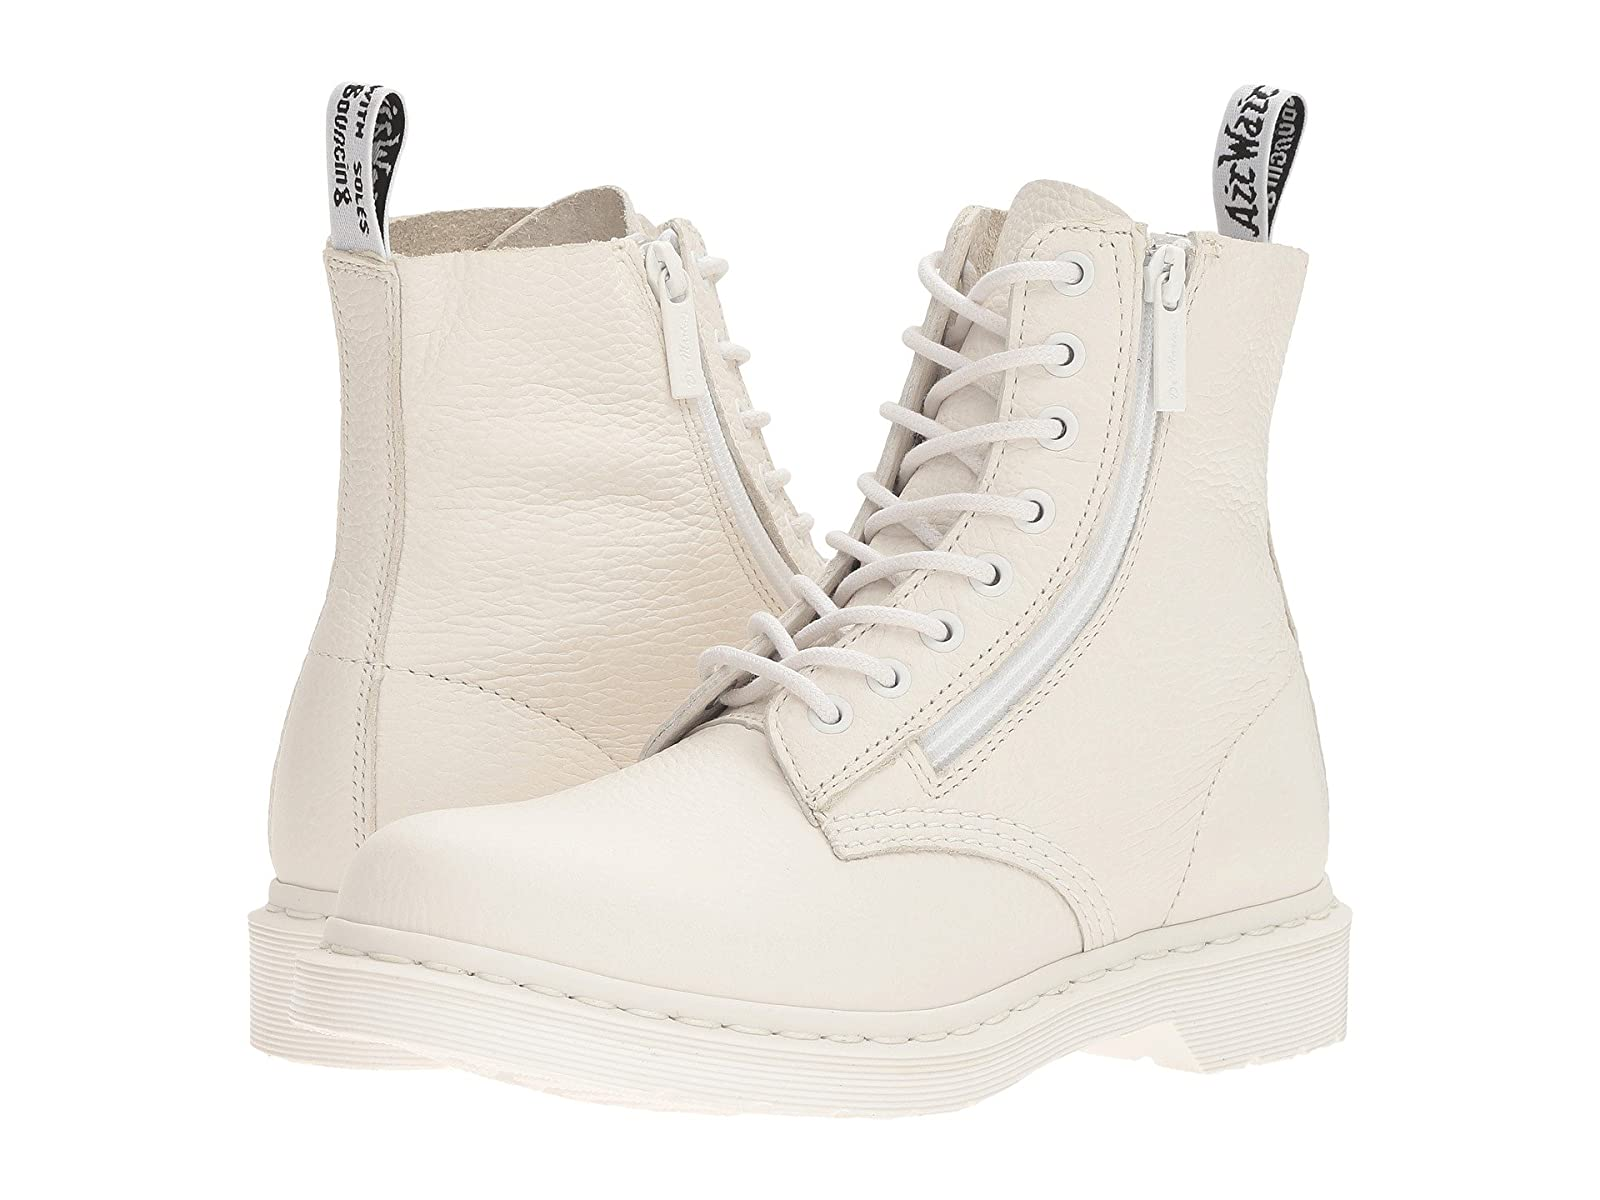 Dr. Martens Pascal w/ ZipCheap and distinctive eye-catching shoes